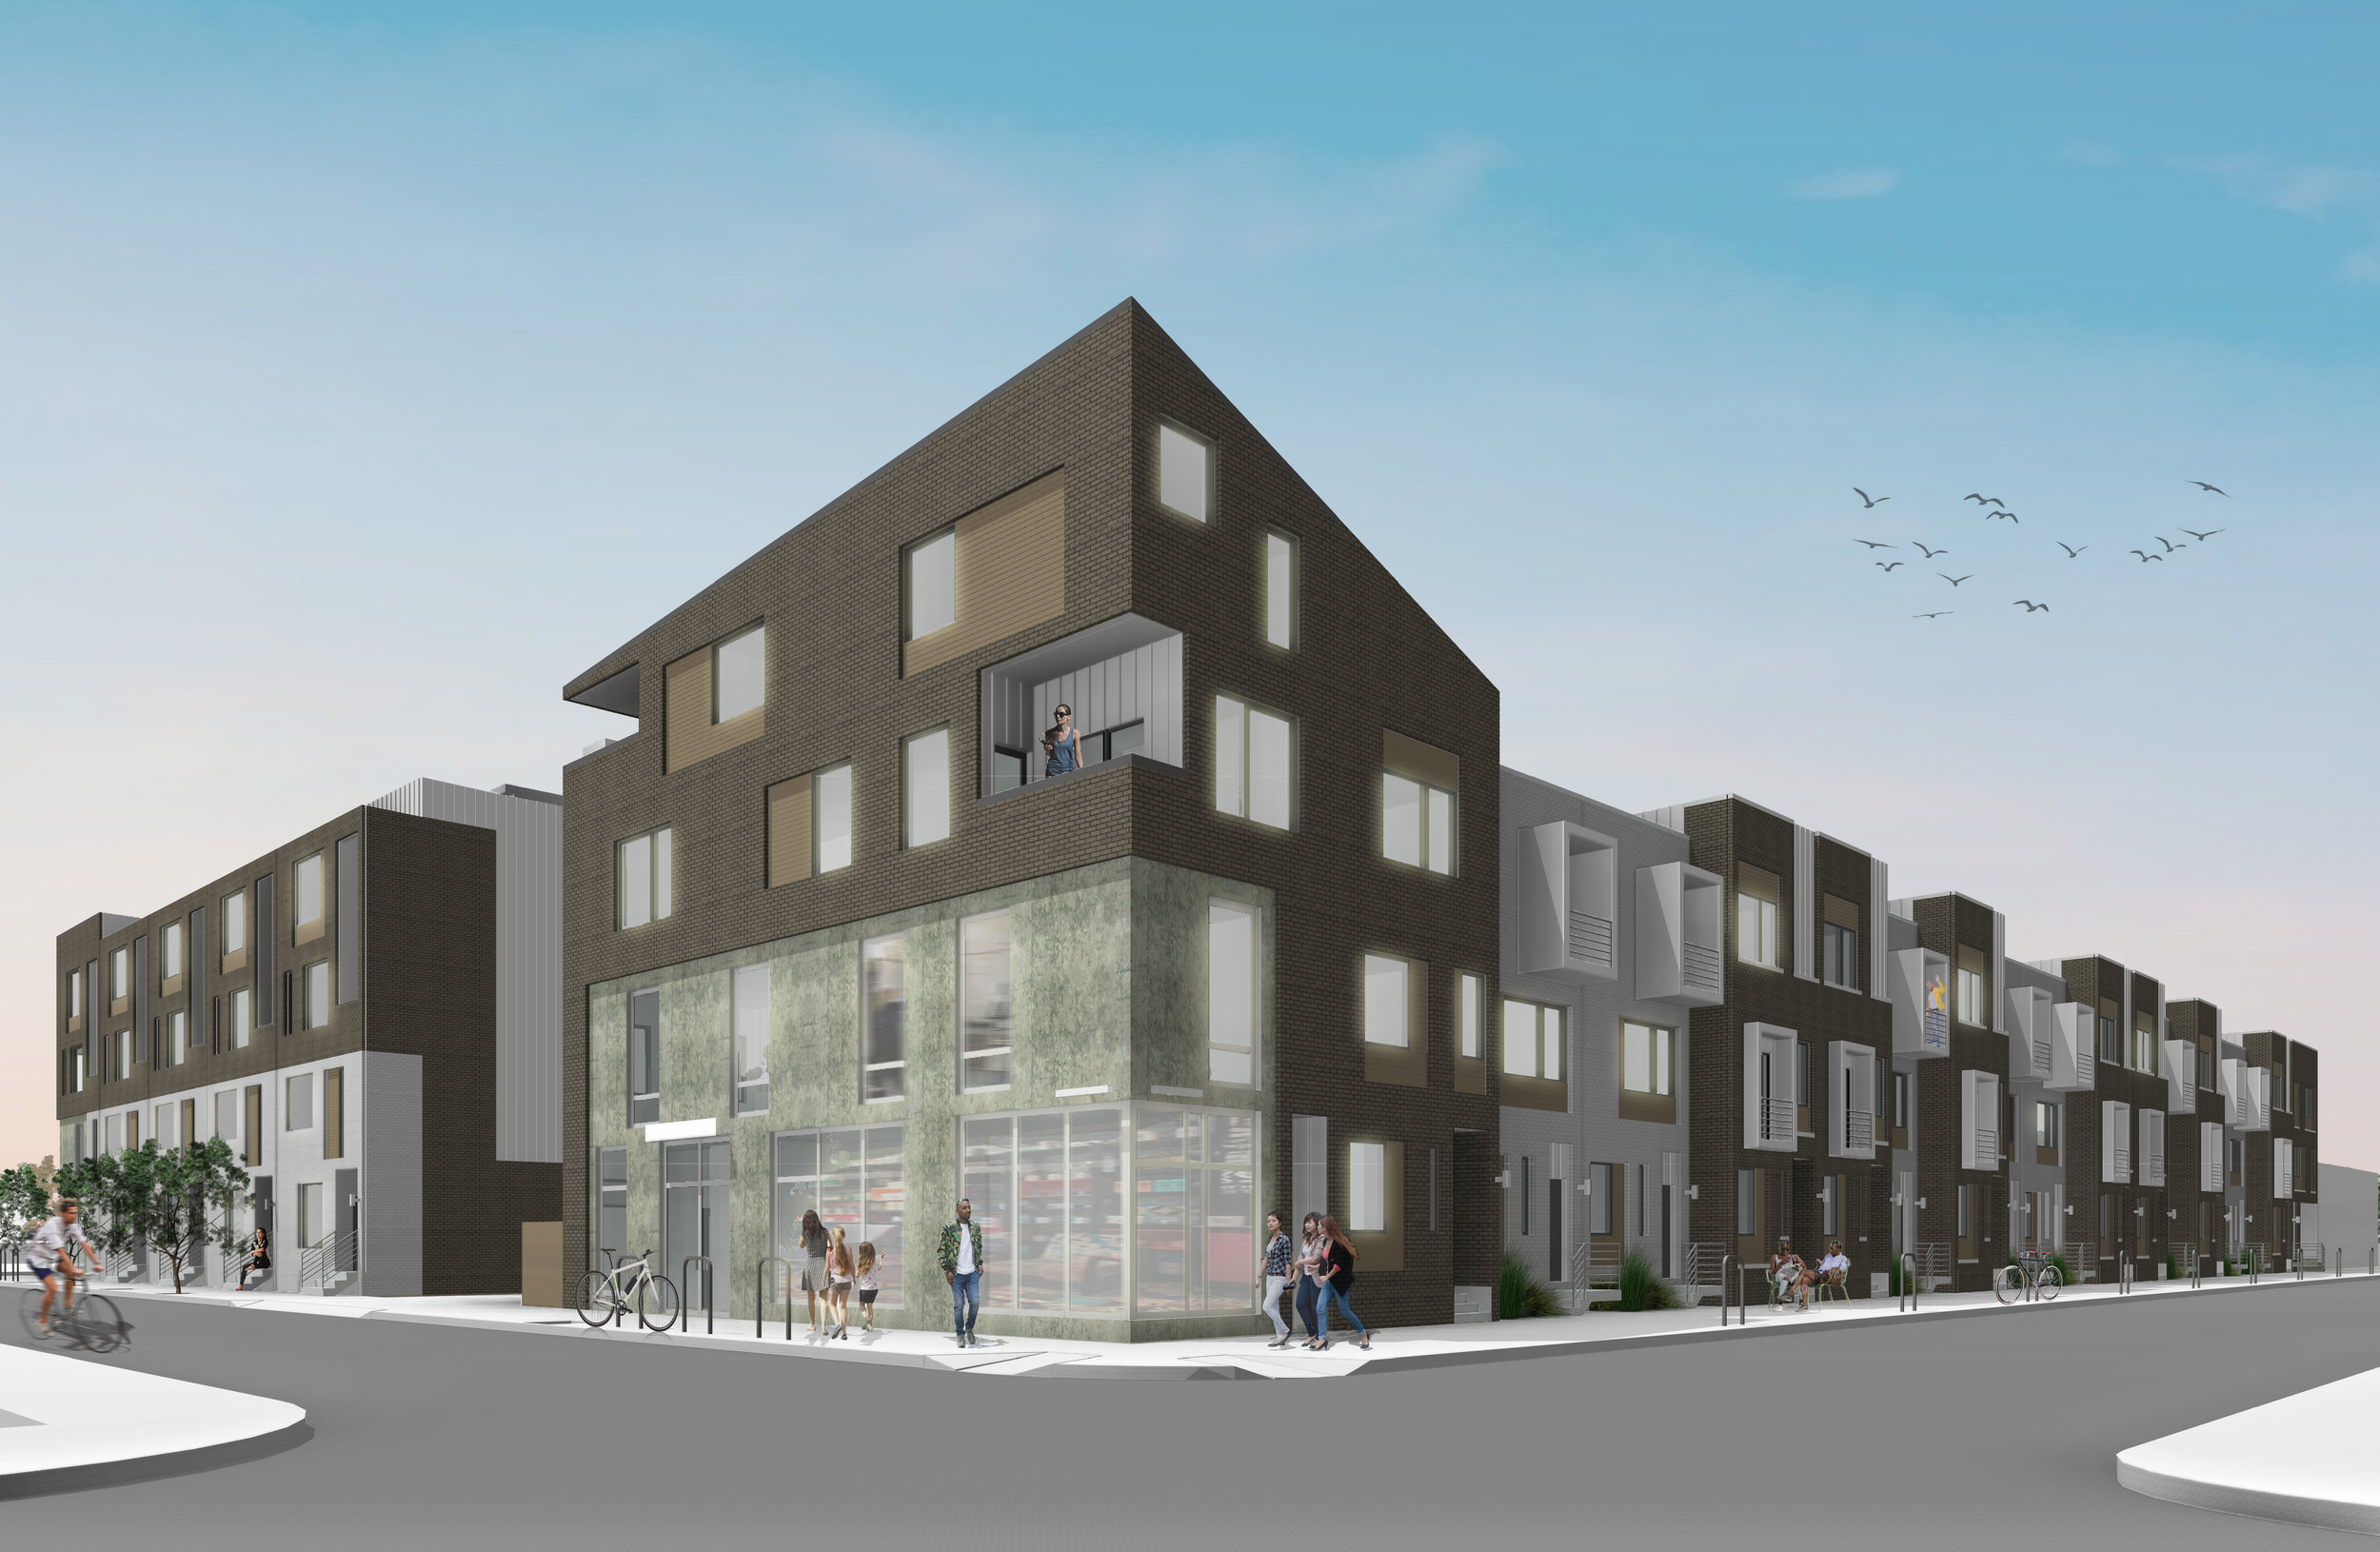 New $21M project planned for Kensington